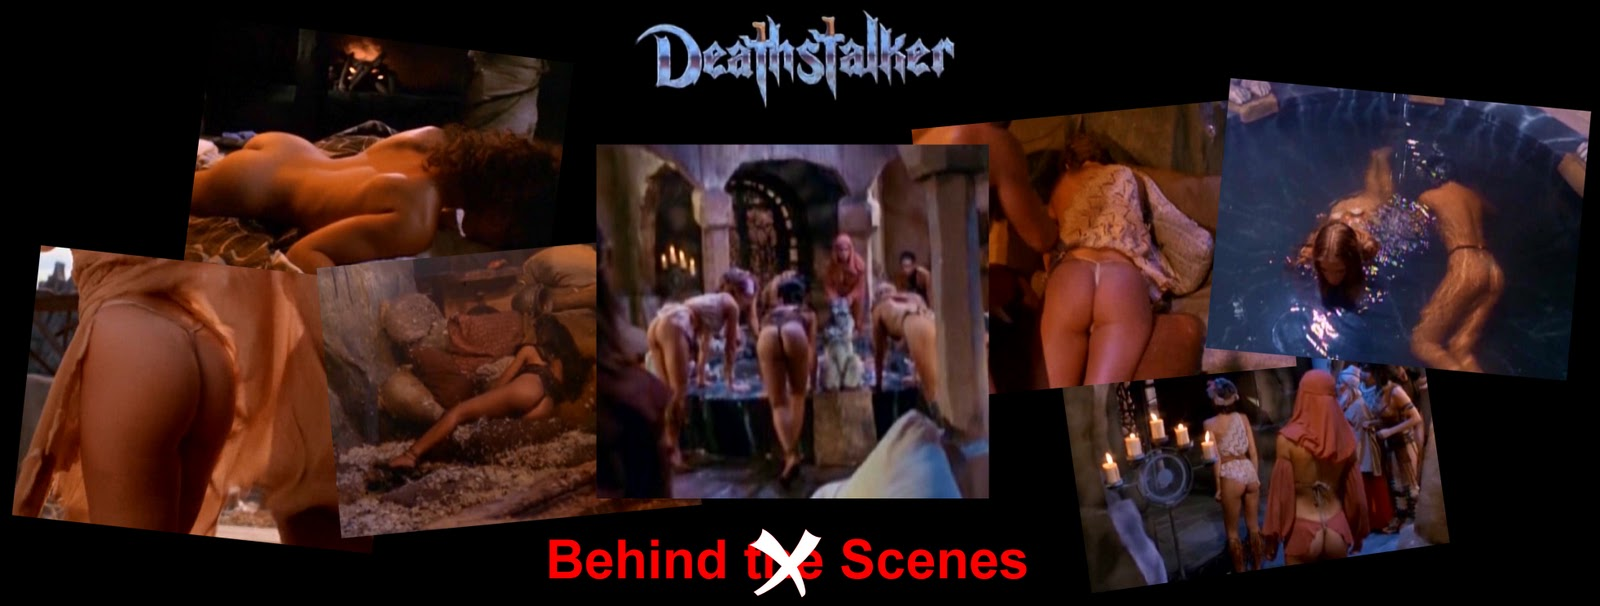 What Does That Mean Hell If I Know But It Sounds Good To Deathstalker